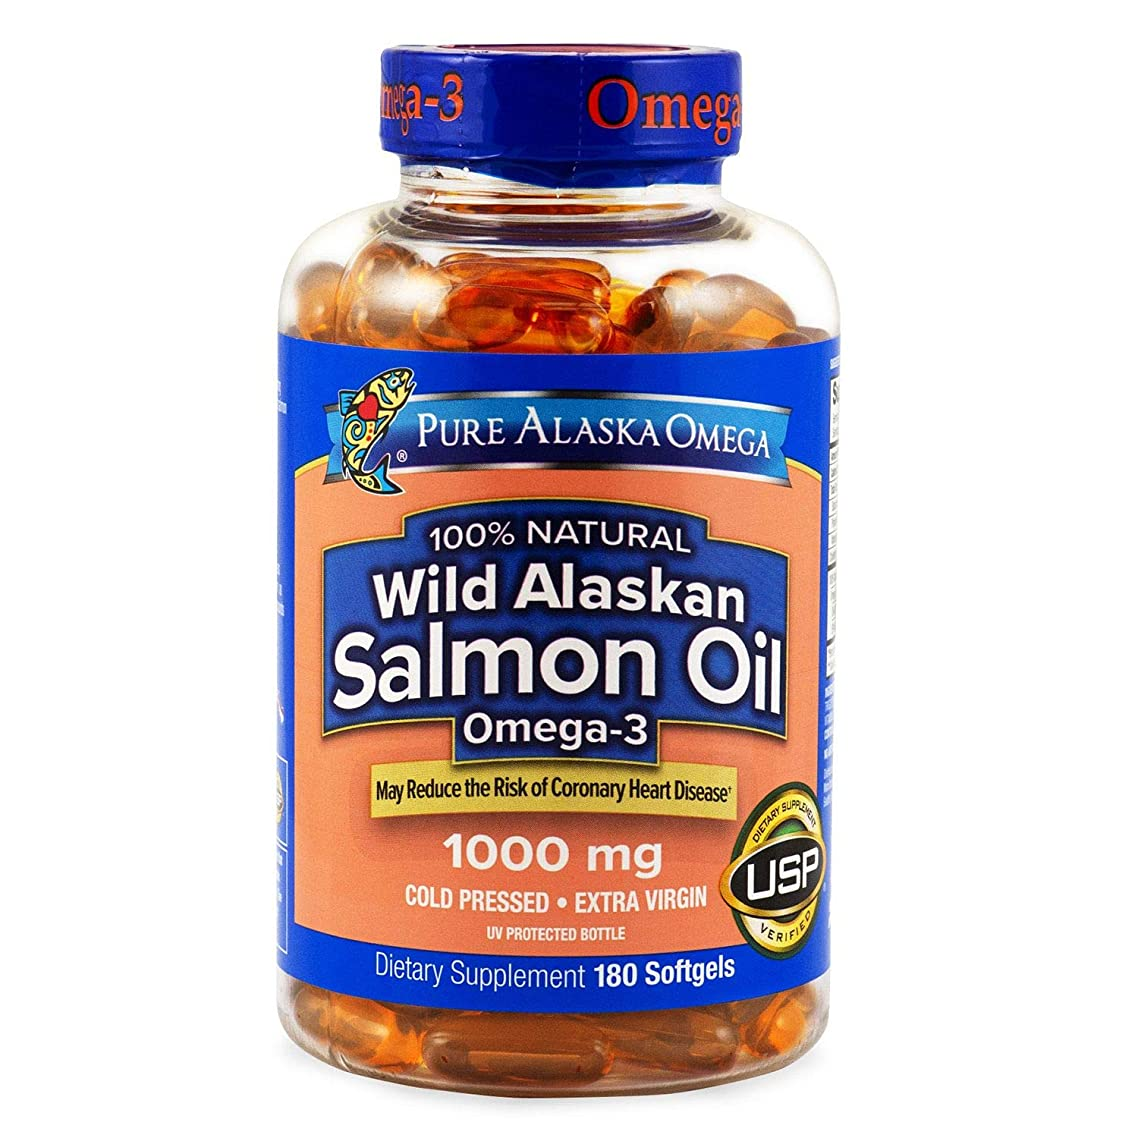 Pure Alaska Omega 100% Natural Wild Alaskan Salmon Oil 1000mg Food Supplement - 180 Softgels